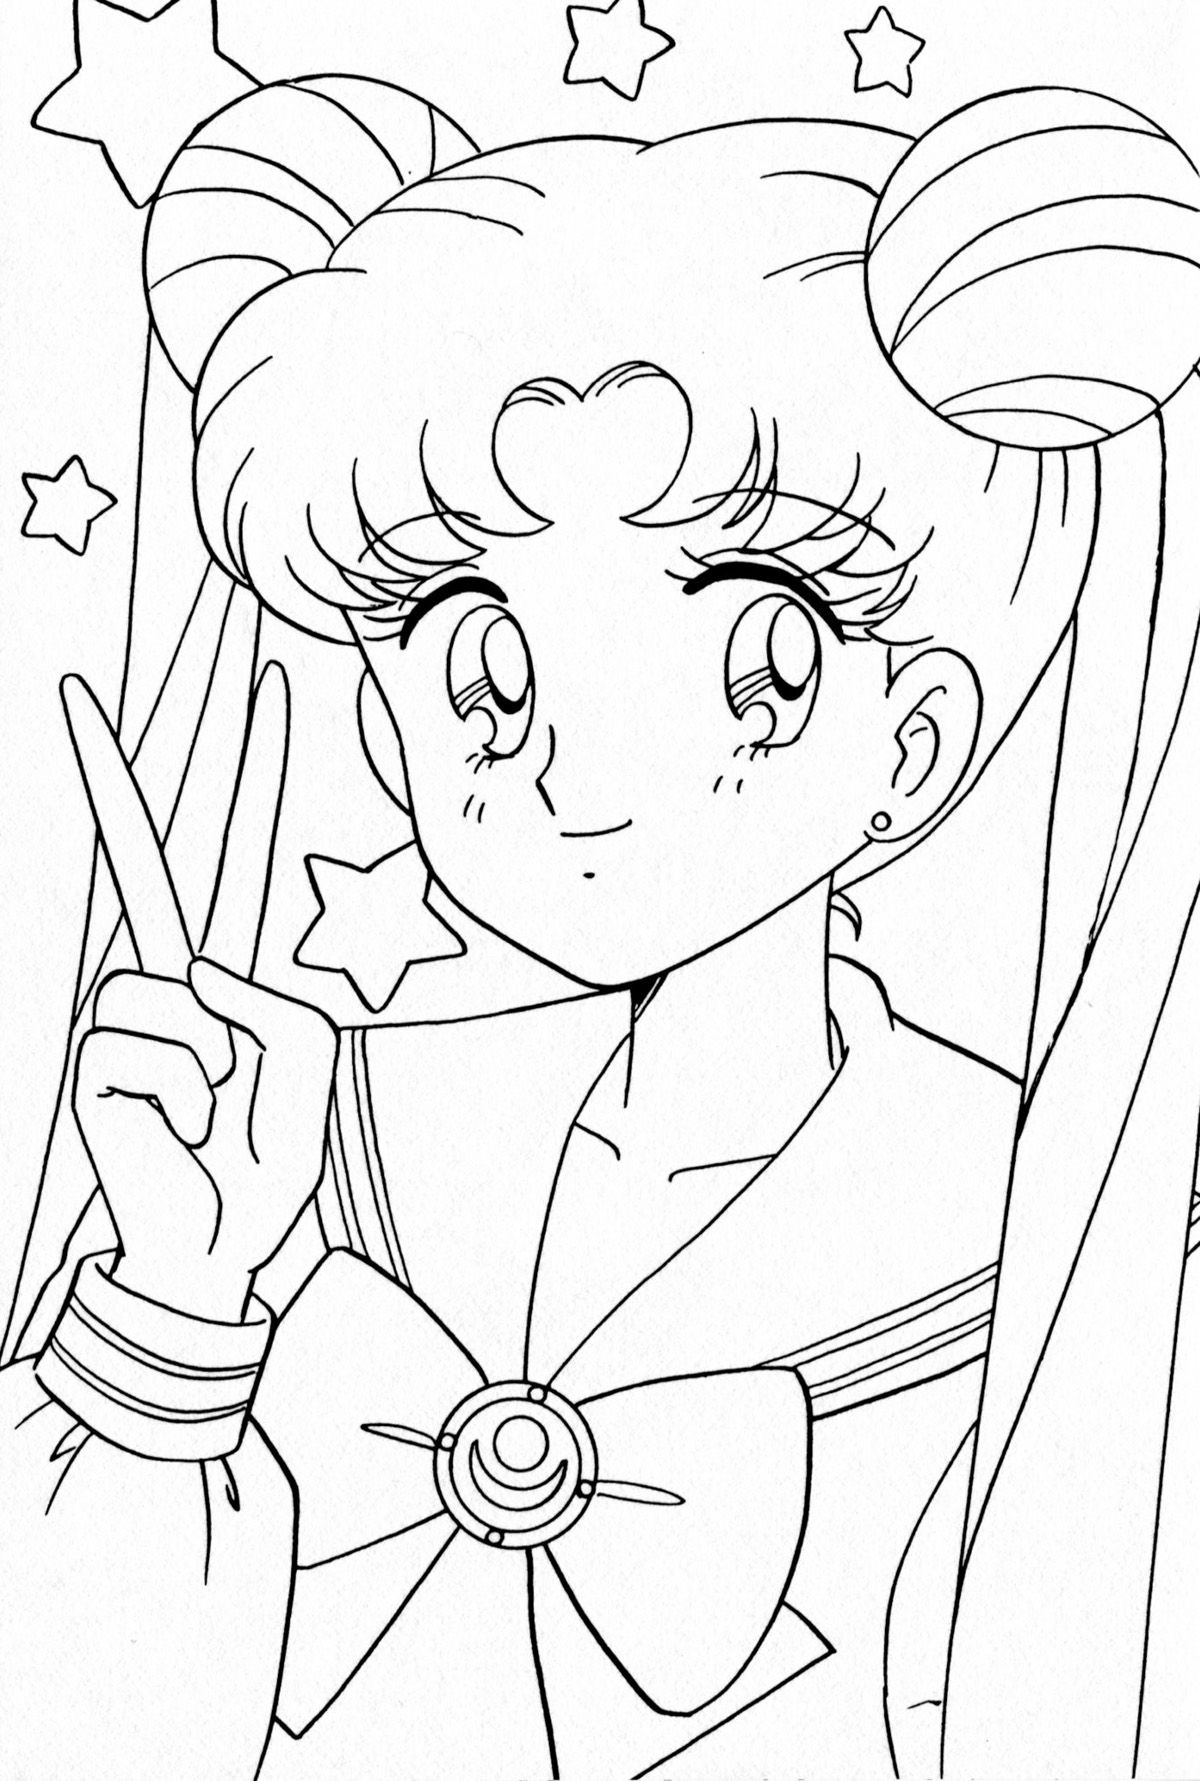 Sailor Moon Coloring Book Pages Moon Coloring Pages Sailor Moon Coloring Pages Sailor Moon Art